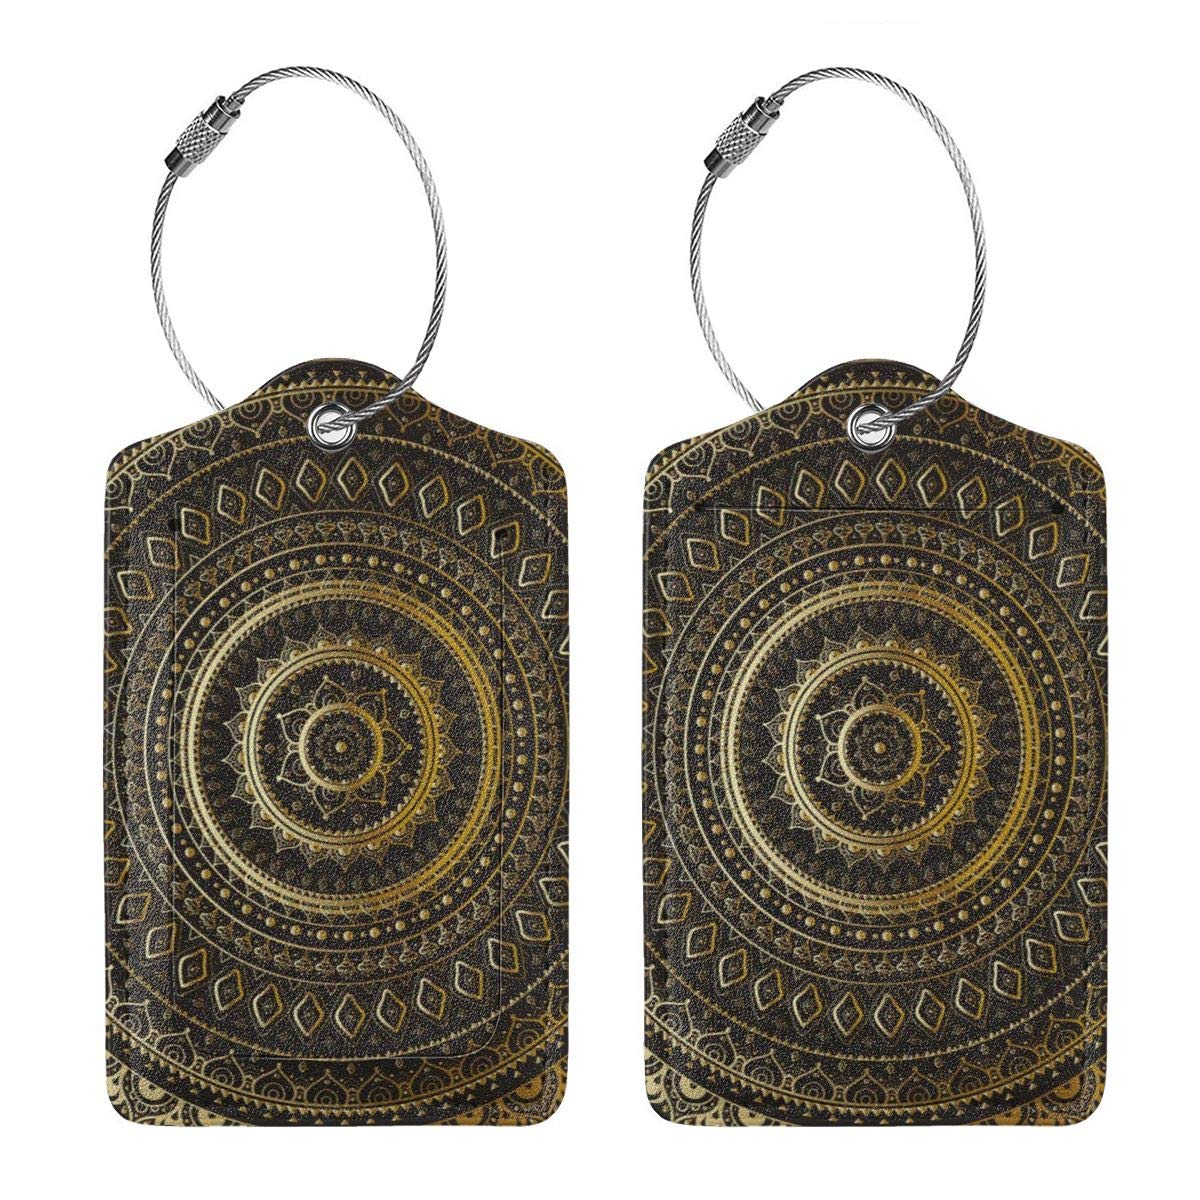 Yonjiq Leather Luggage Tag Gold Black Mandala Ethnic Oriental Luggage Tags for Suitcase Travel Lover Gifts for Men Women